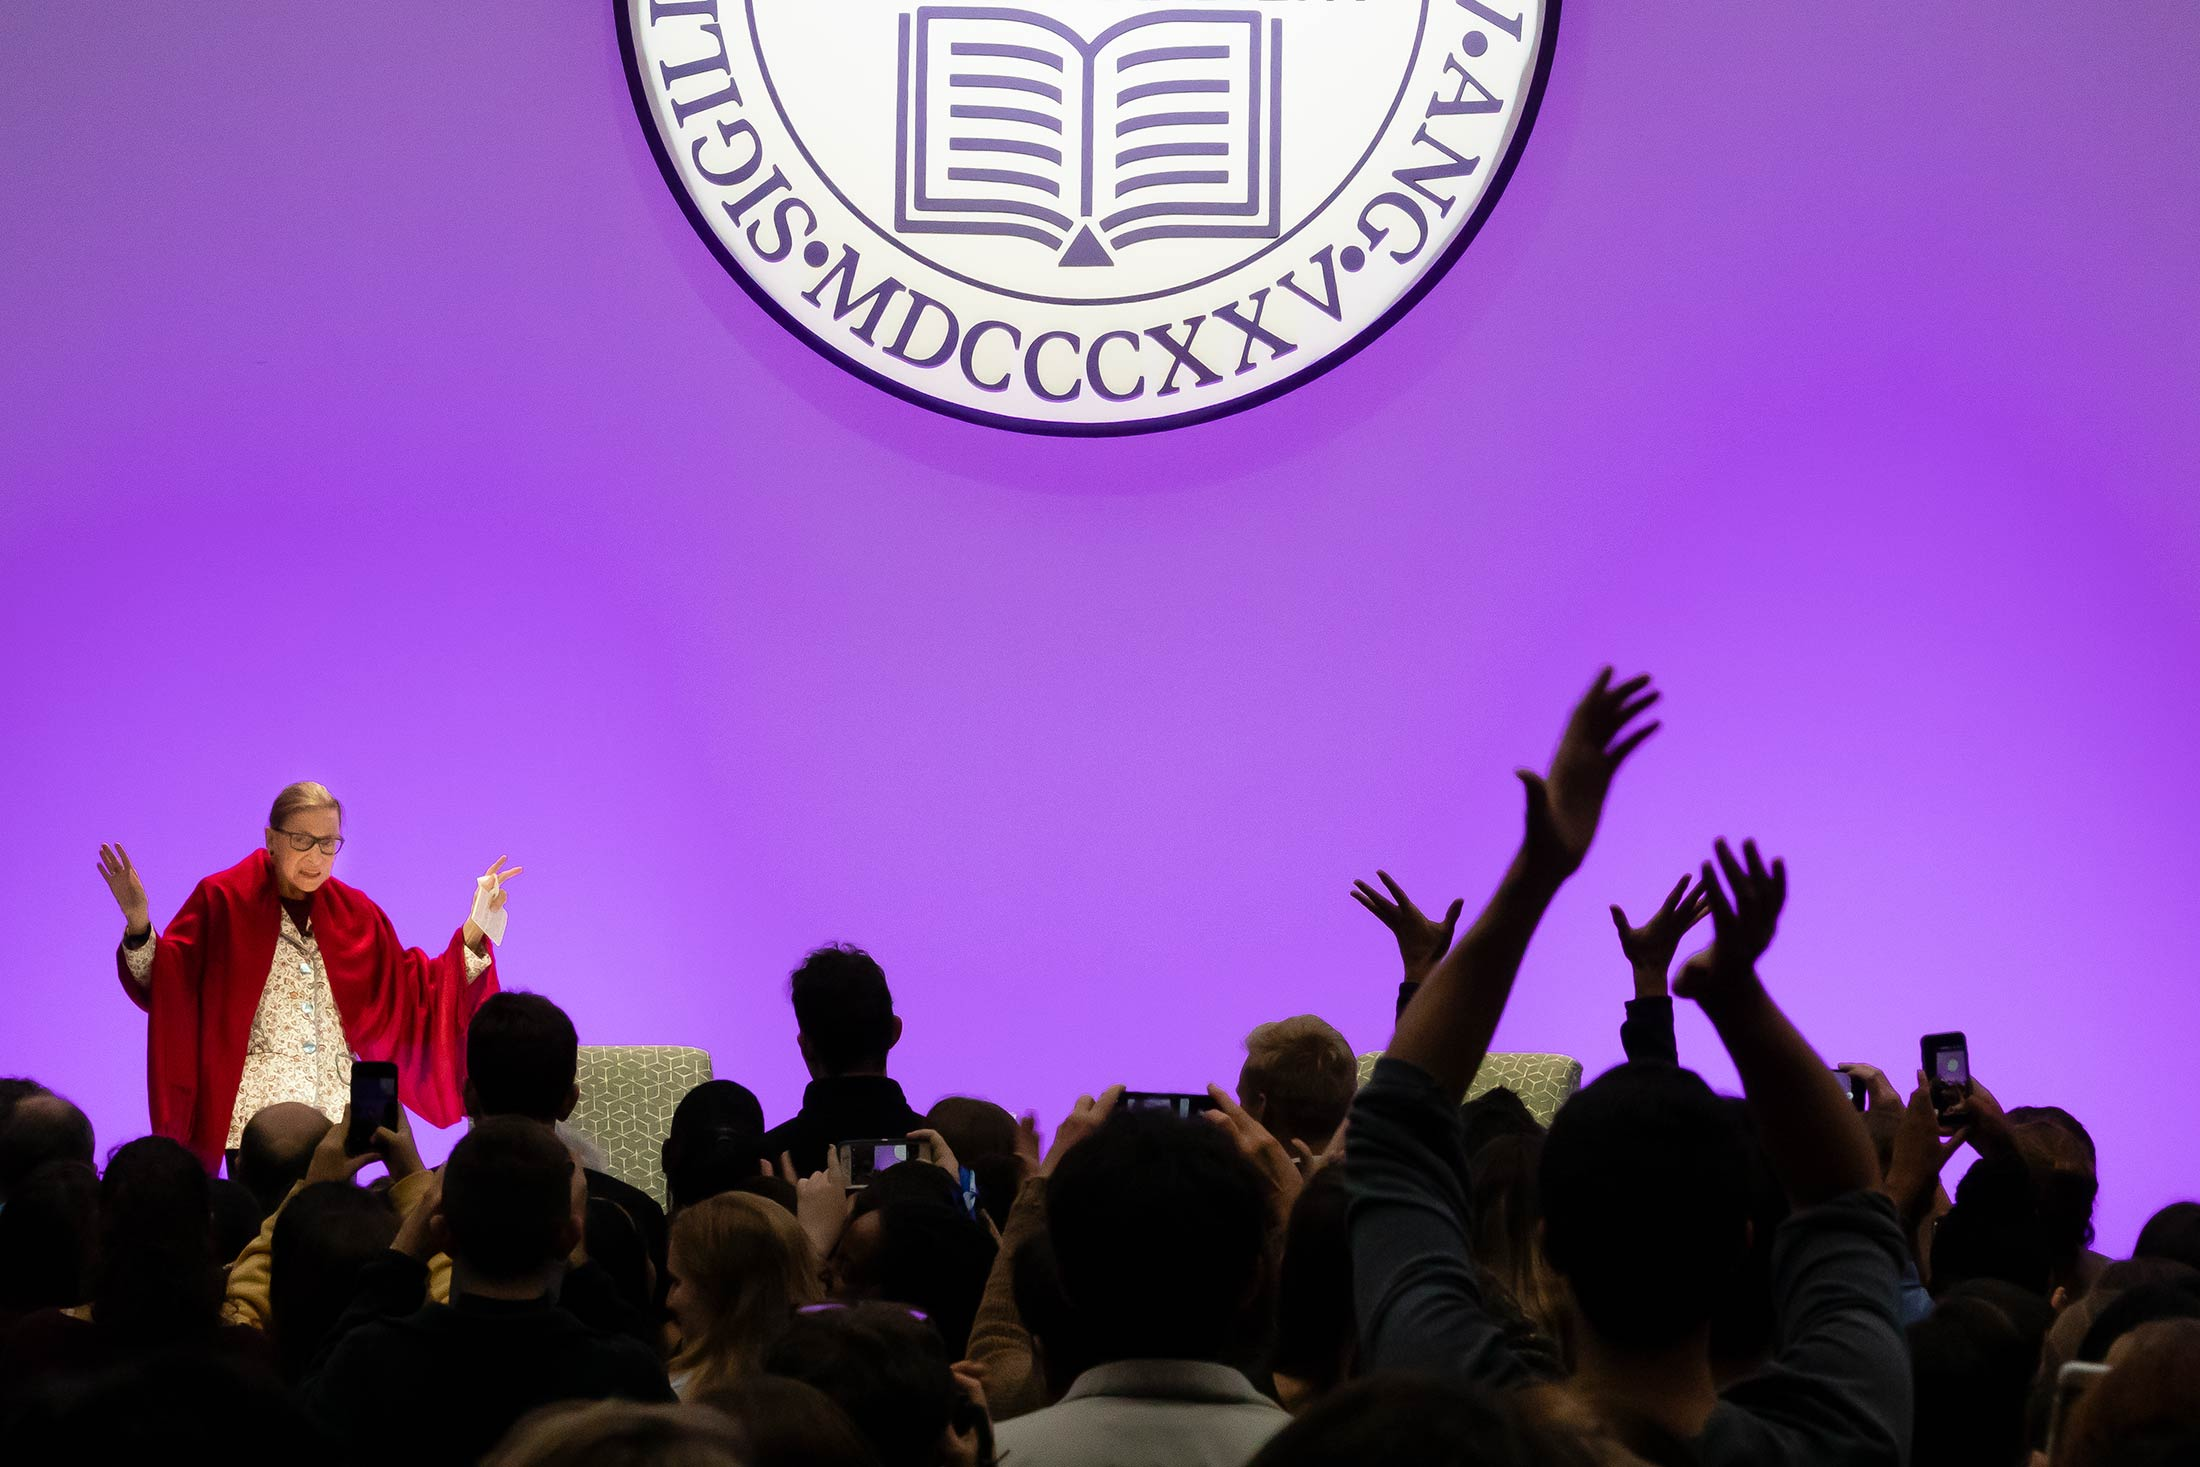 Ruth Bader Ginsburg visited Amherst College